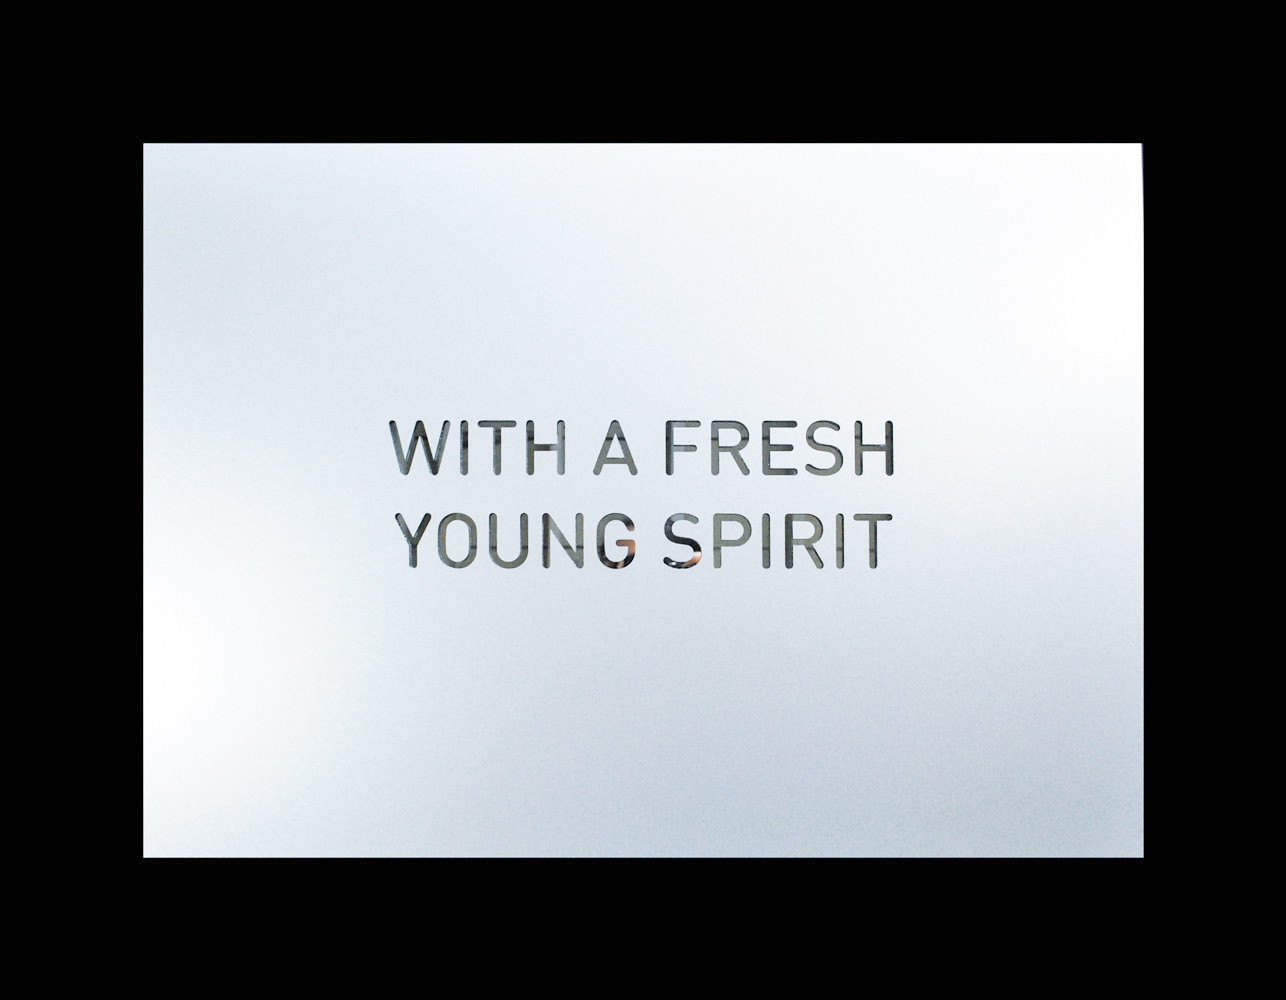 with-a-fresh-young-spirit